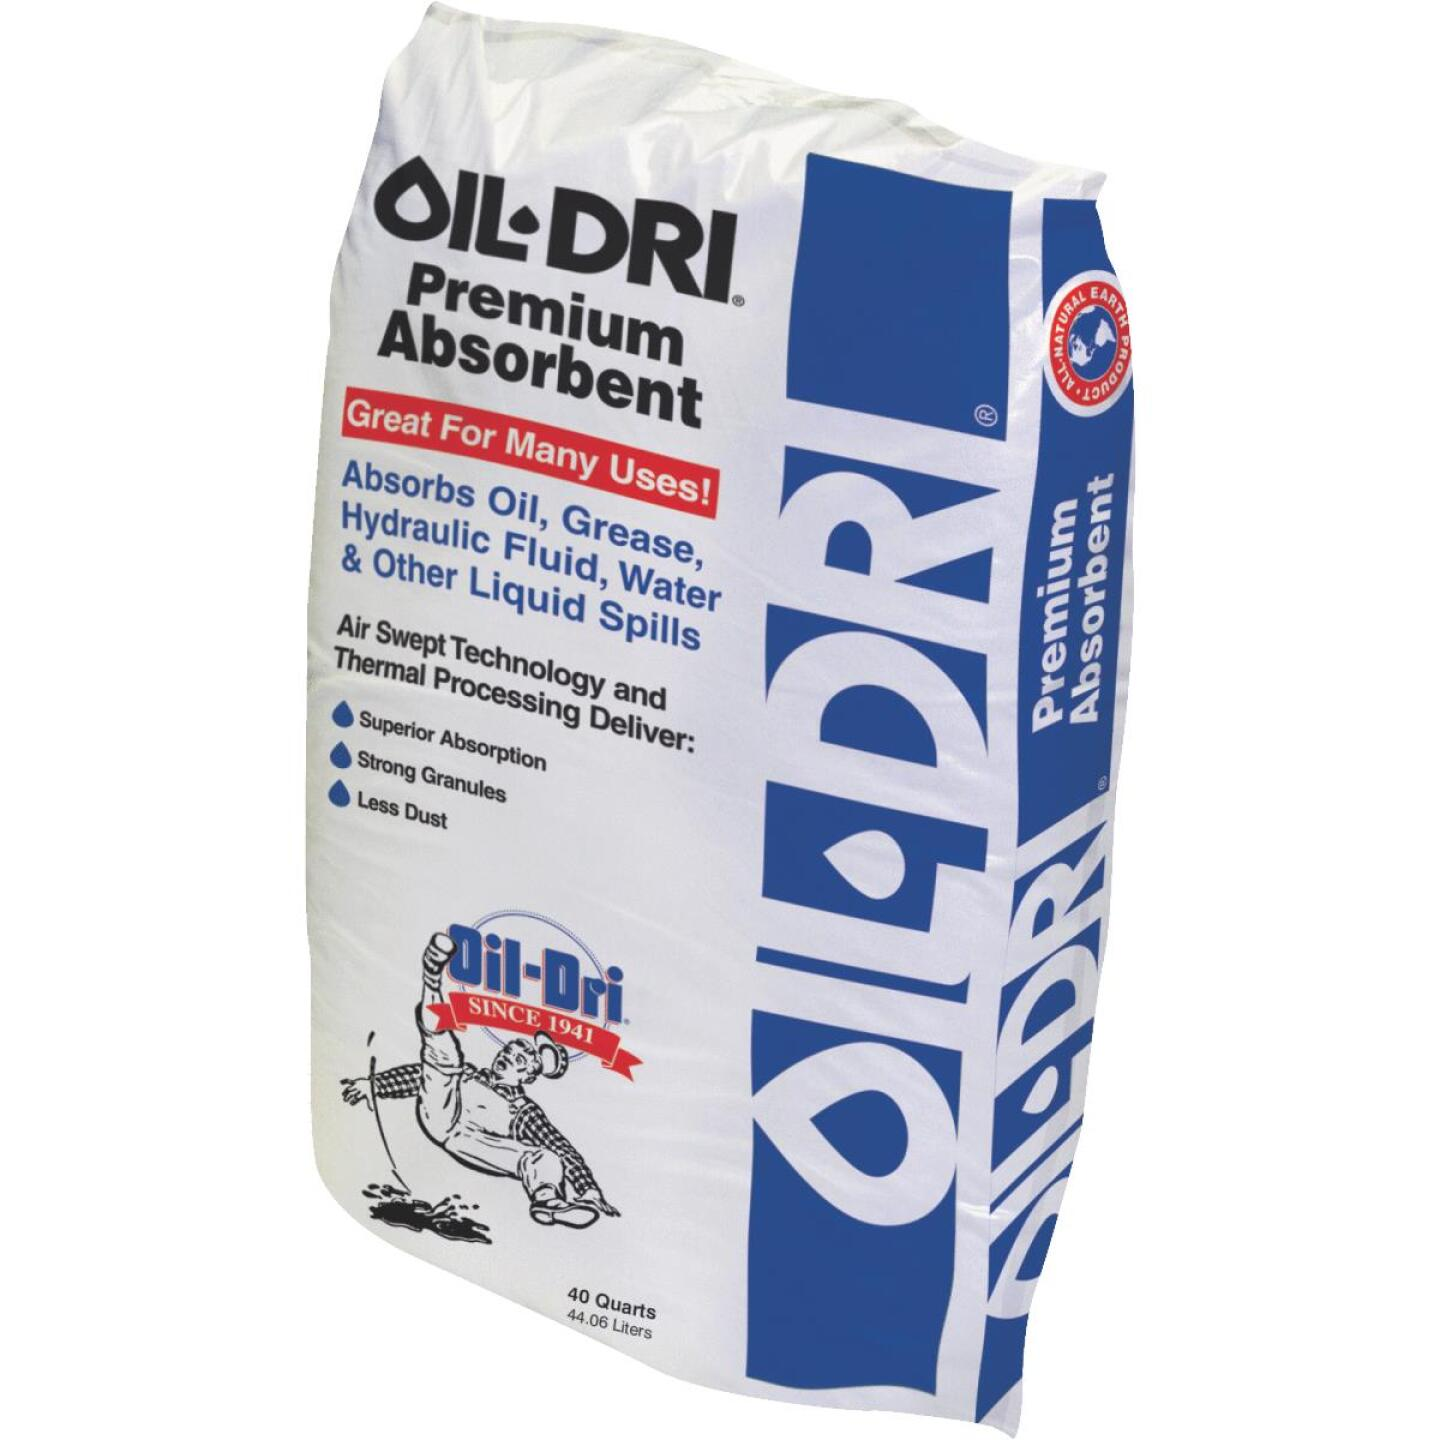 Oil Dri 43 Lb. Industrial Oil Absorbent Image 1